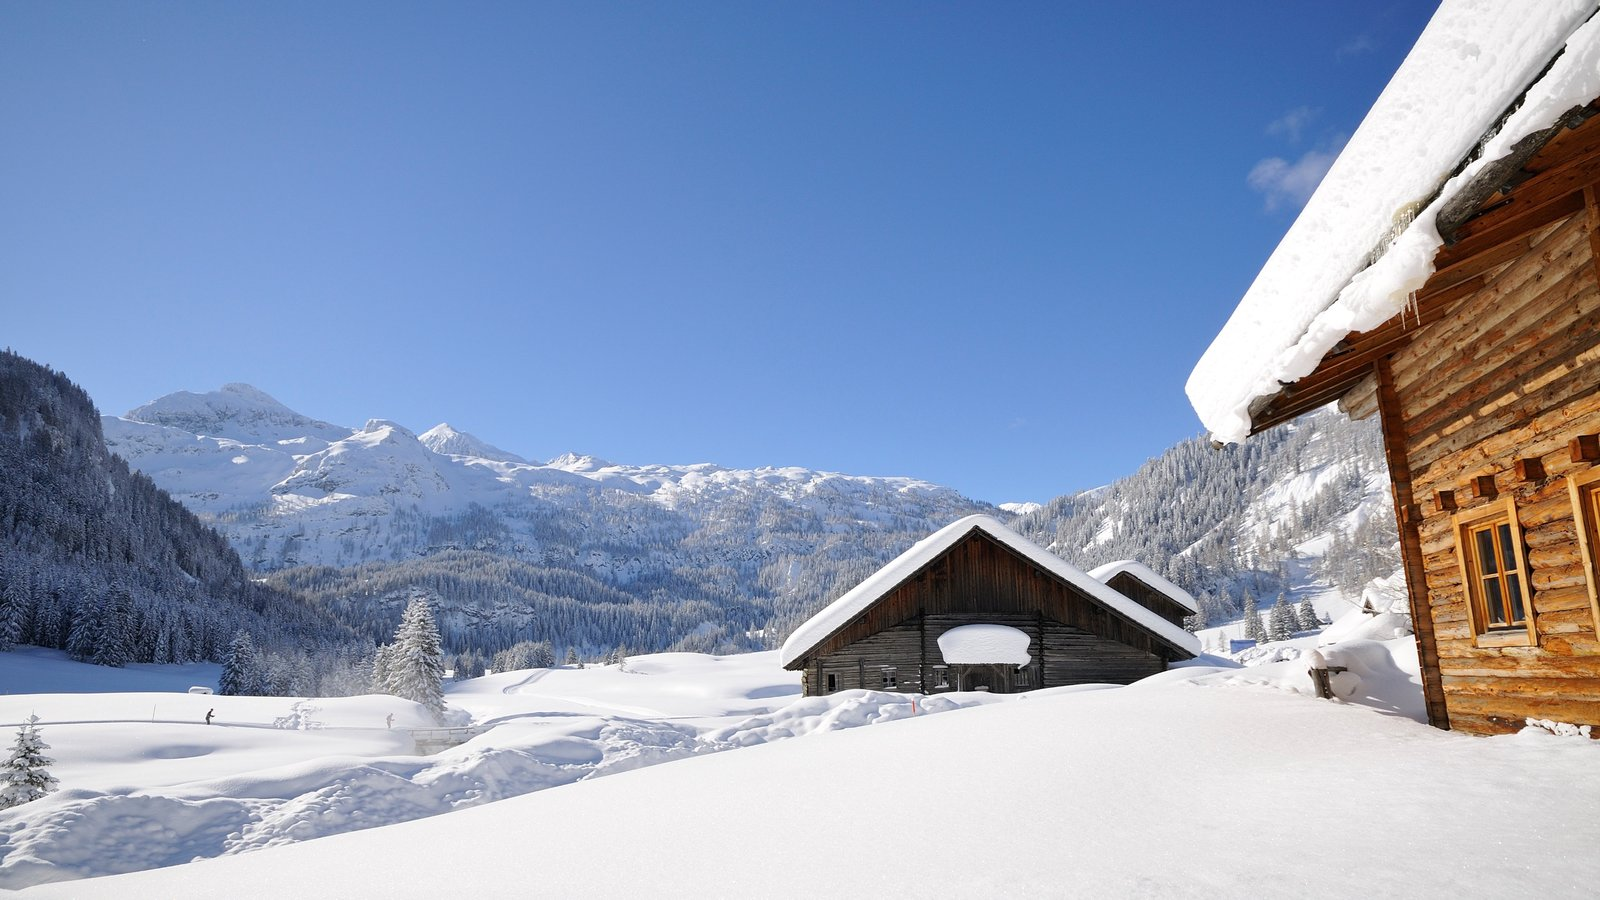 Obertauern showing snow and a house